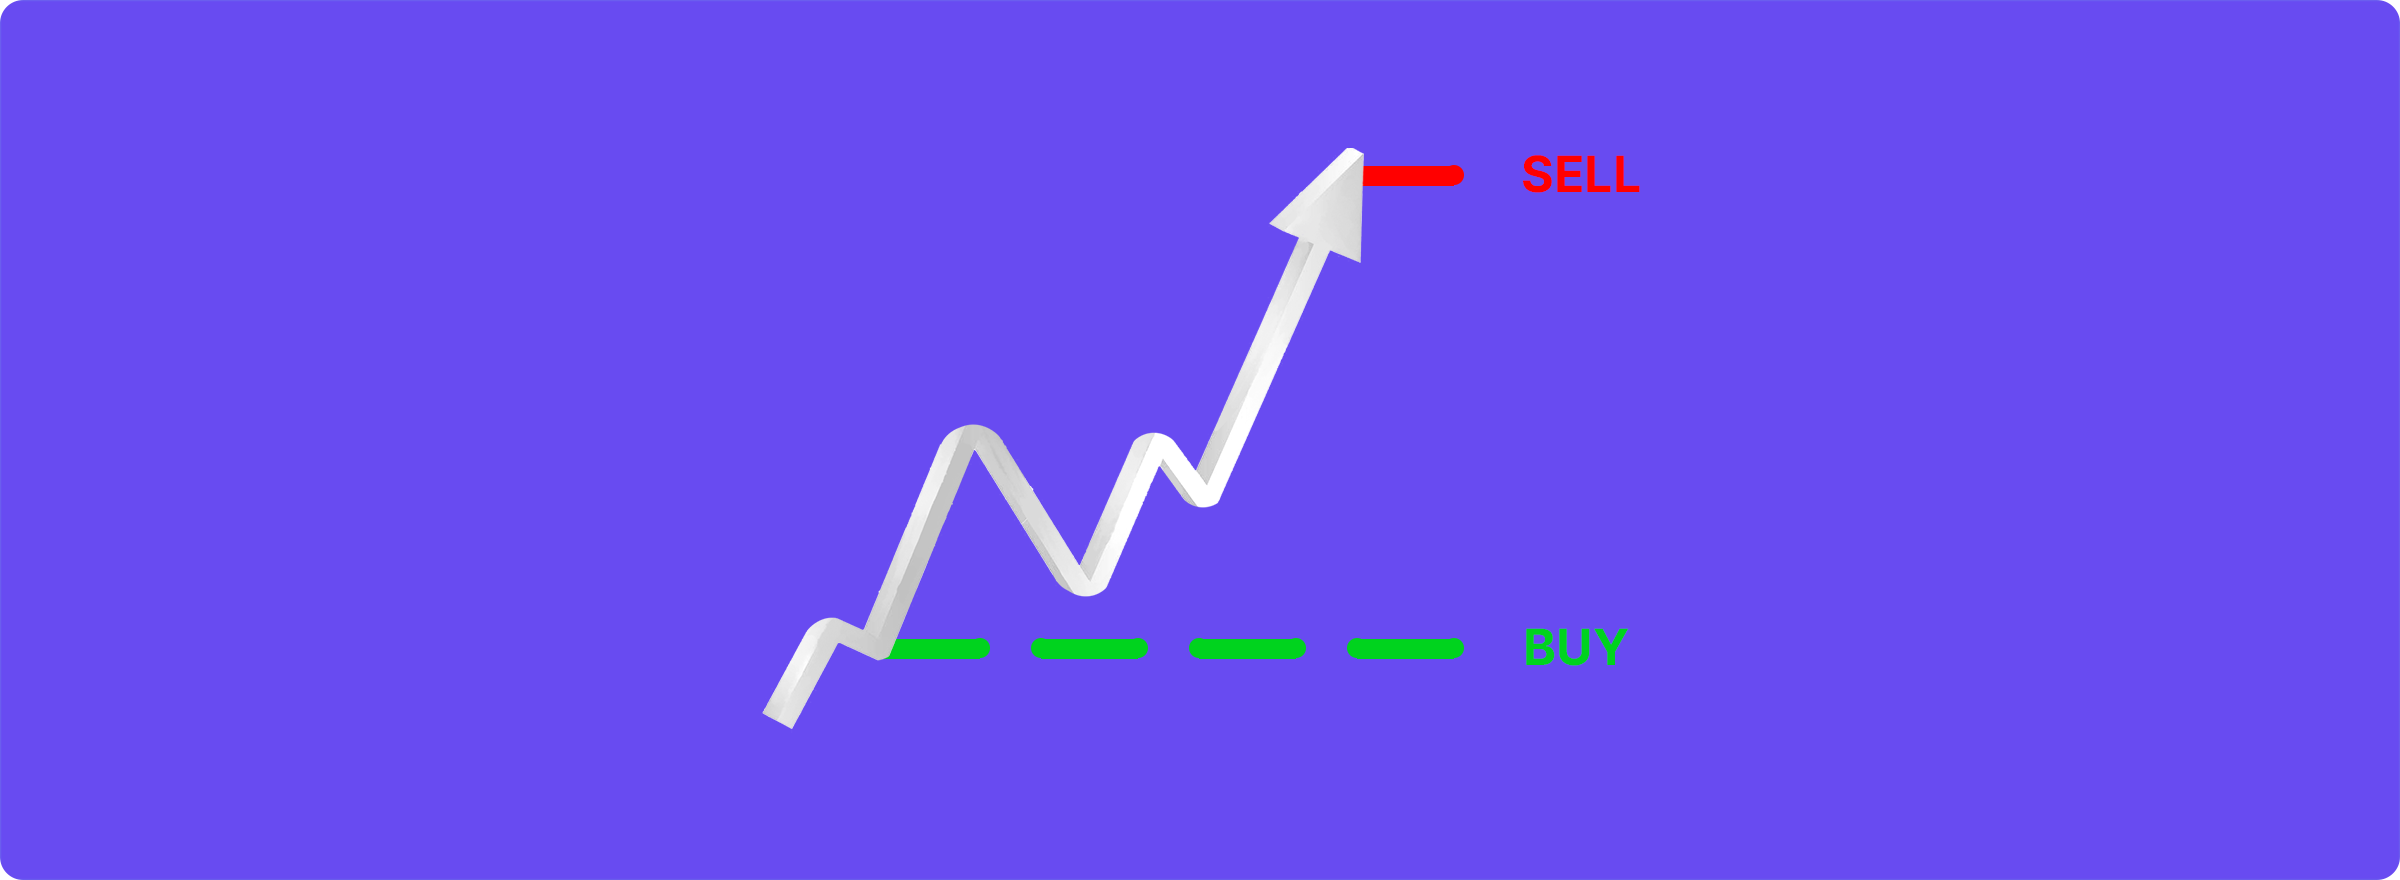 Limit Buy / Limit Sell